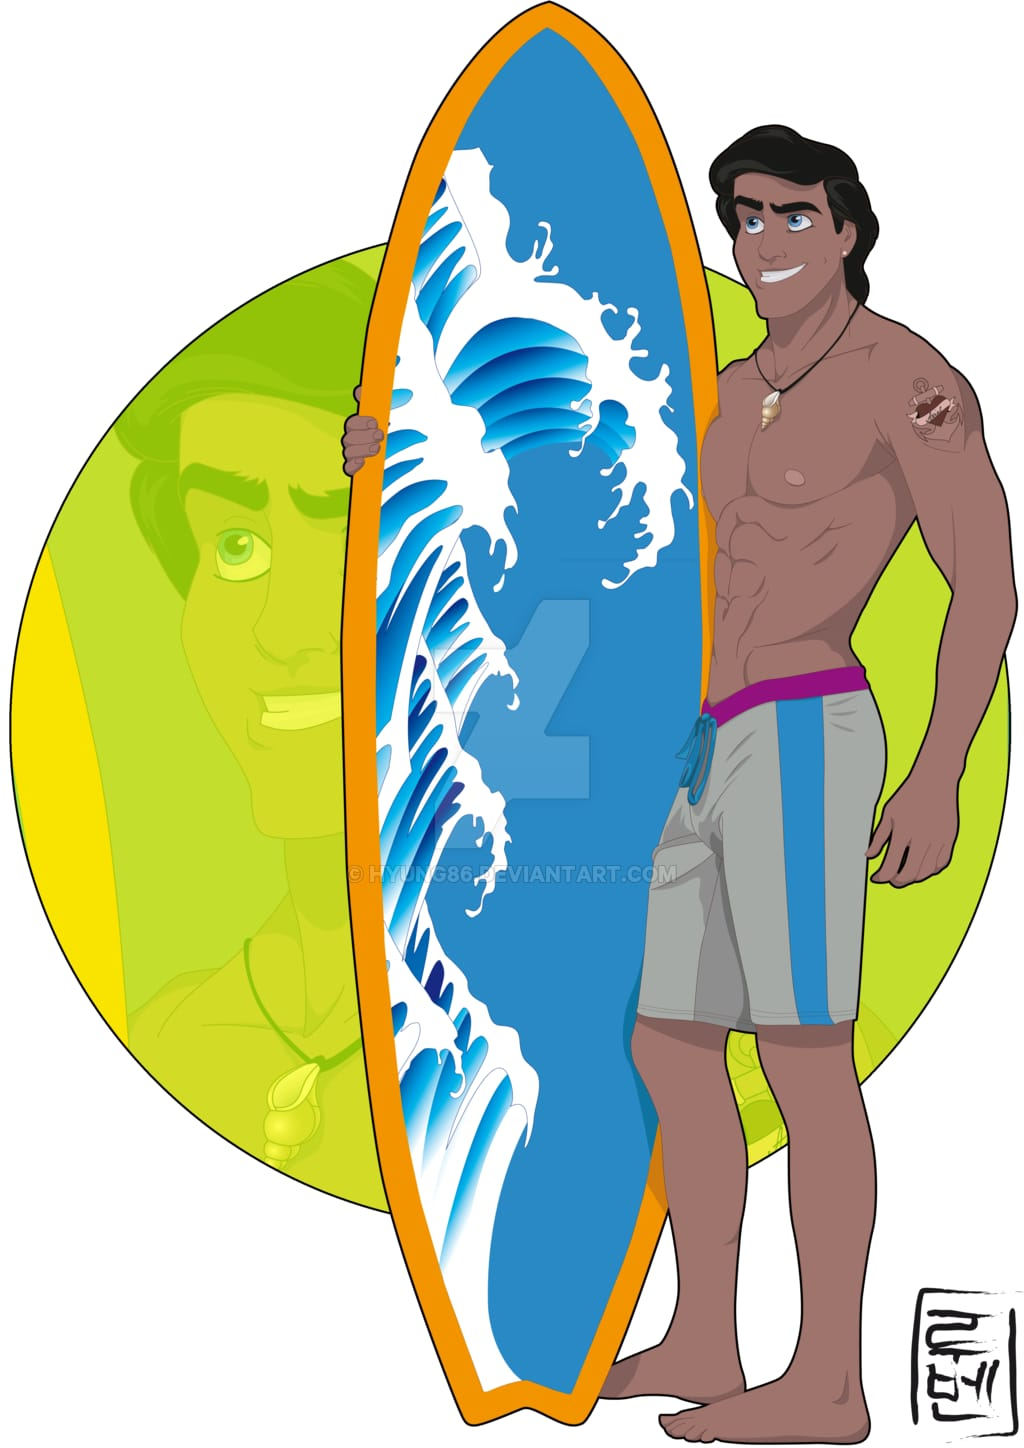 Little Mermaid's Prince Eric, reimagined as a surfer.